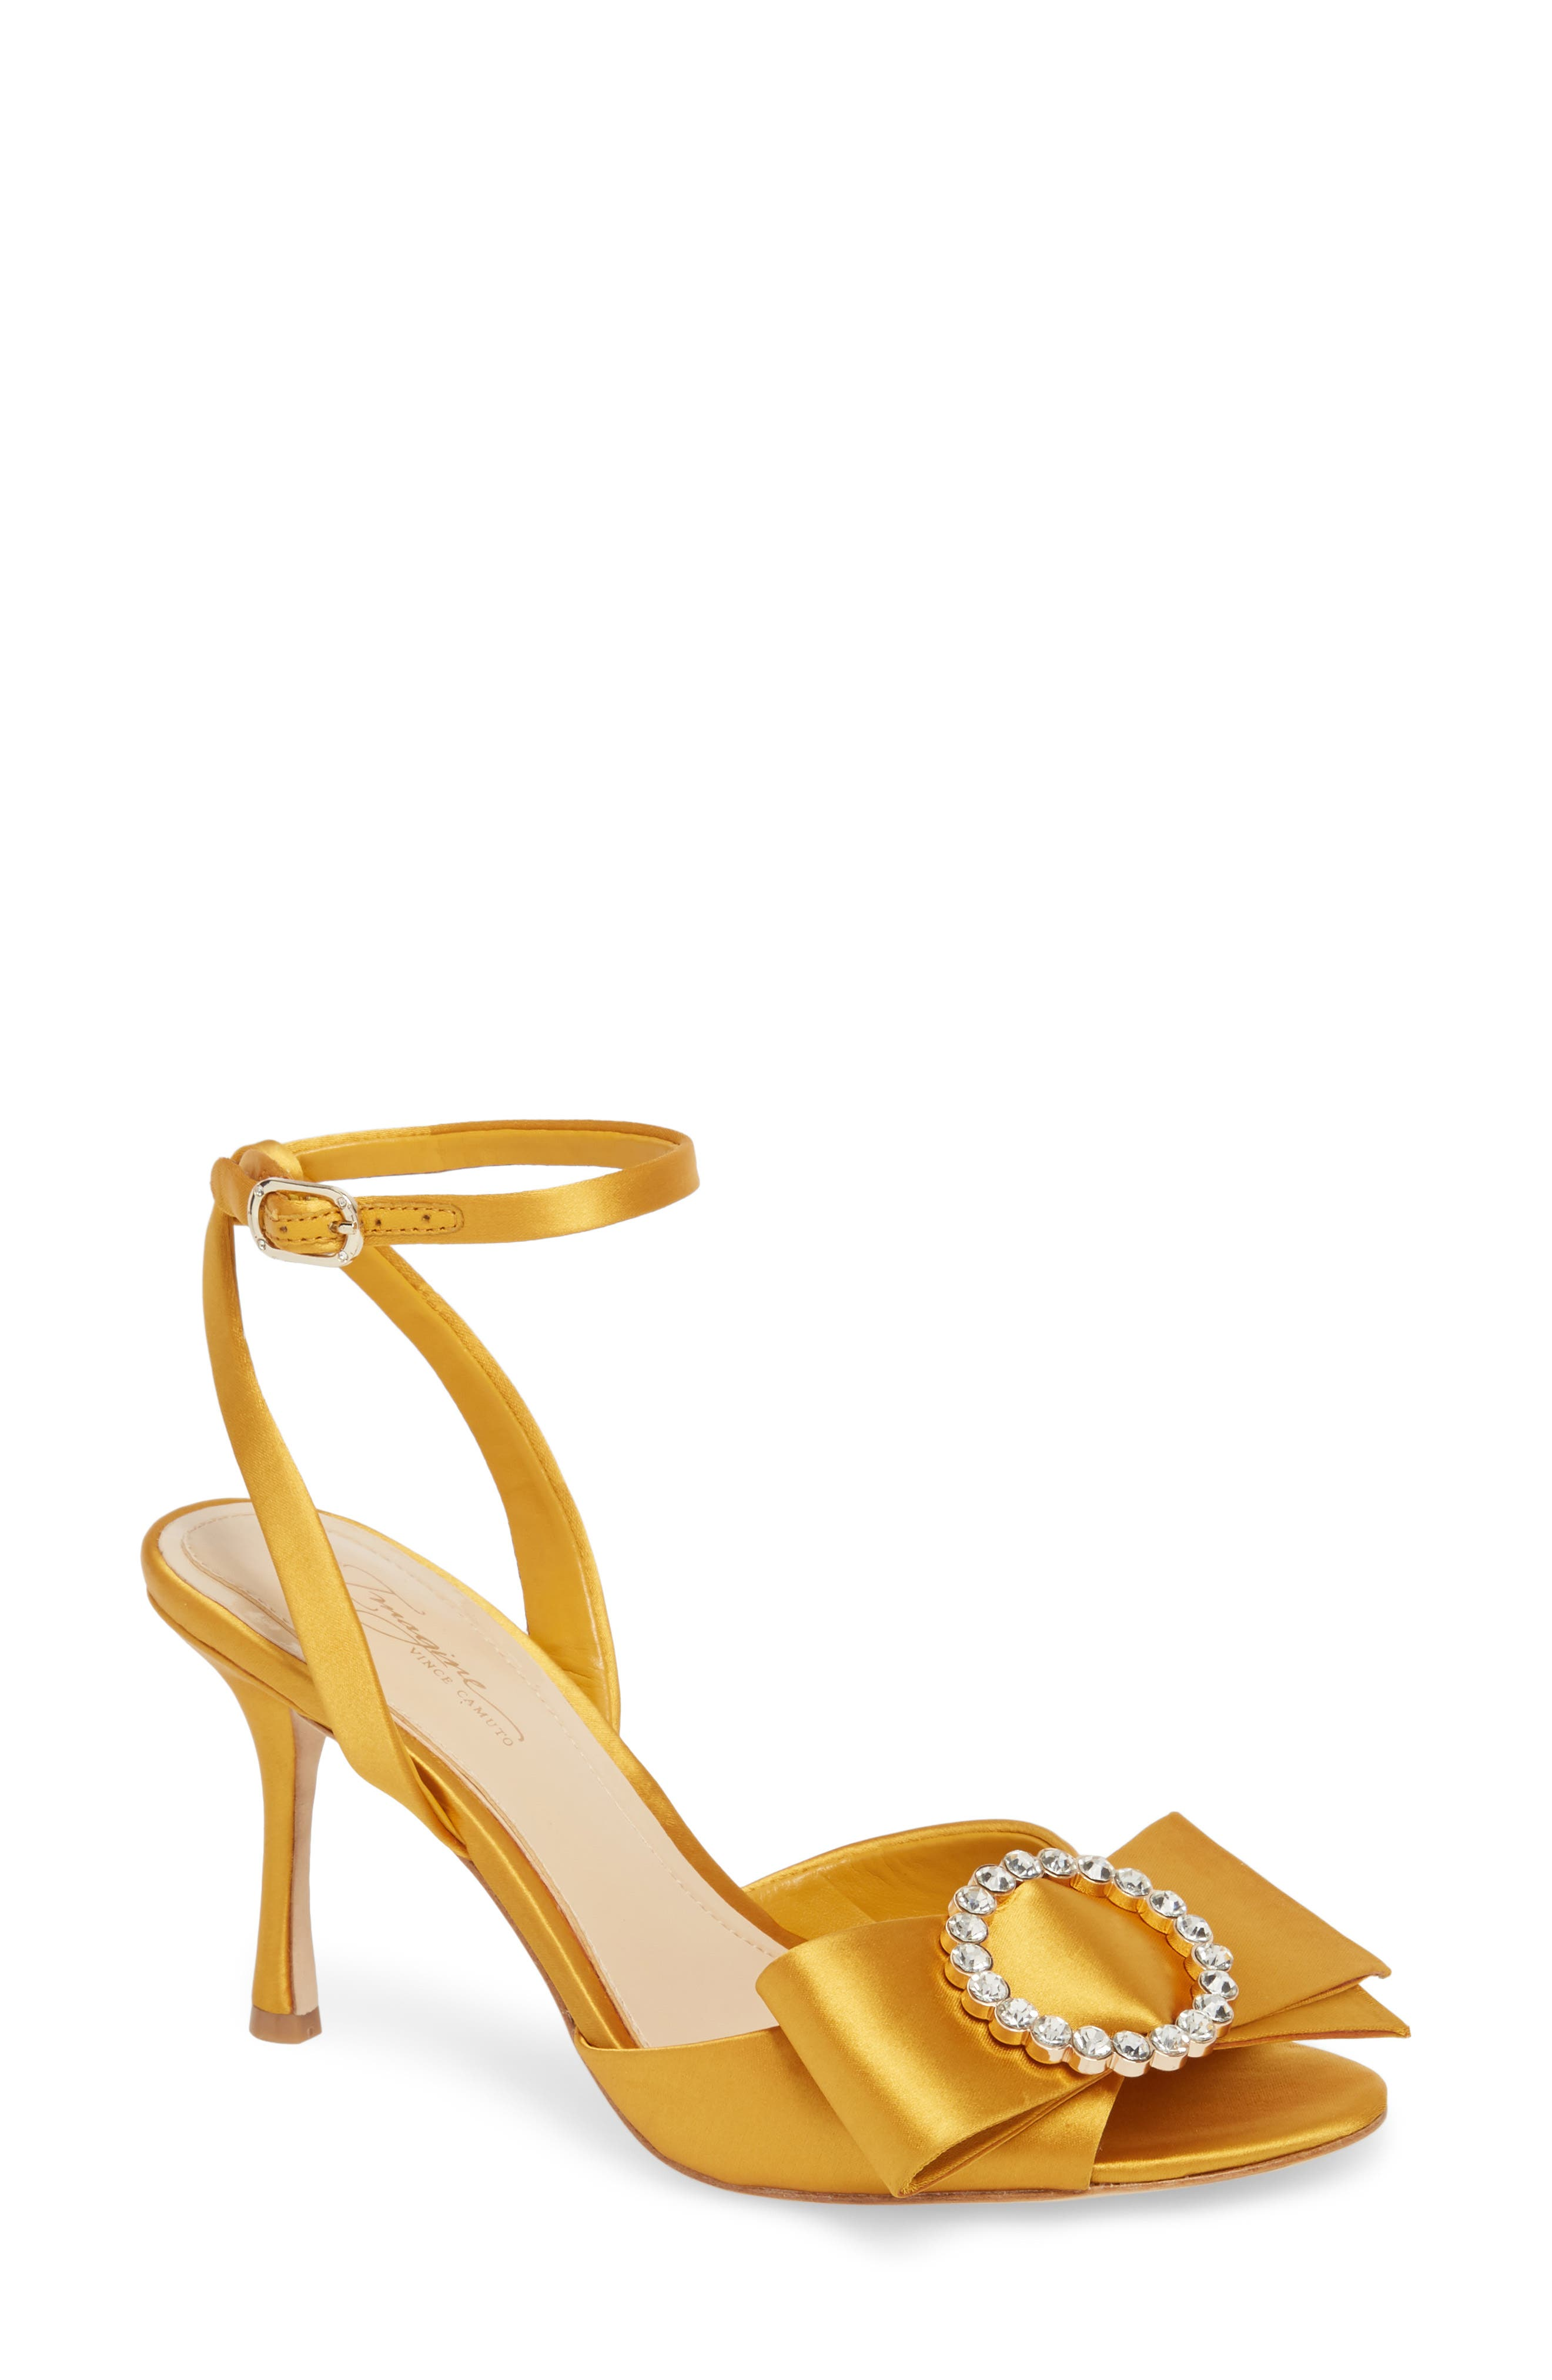 Imagine By Vince Camuto Belia Sandal- Yellow